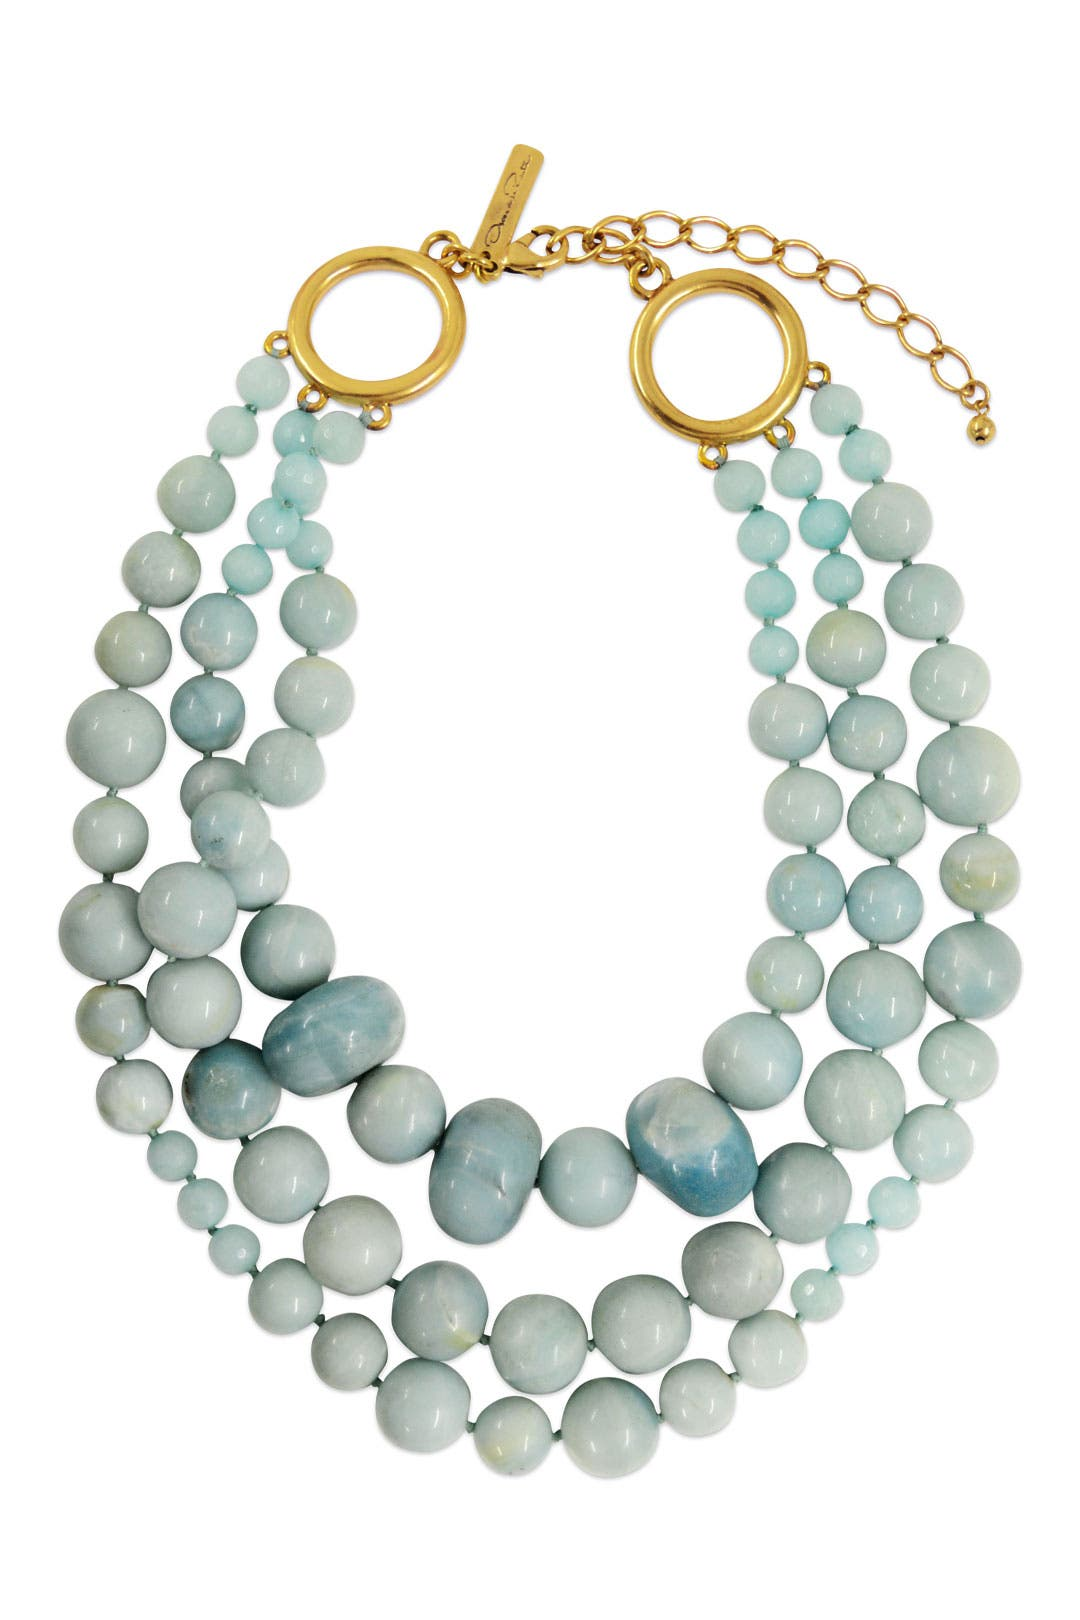 Coastline Necklace by Oscar de la Renta